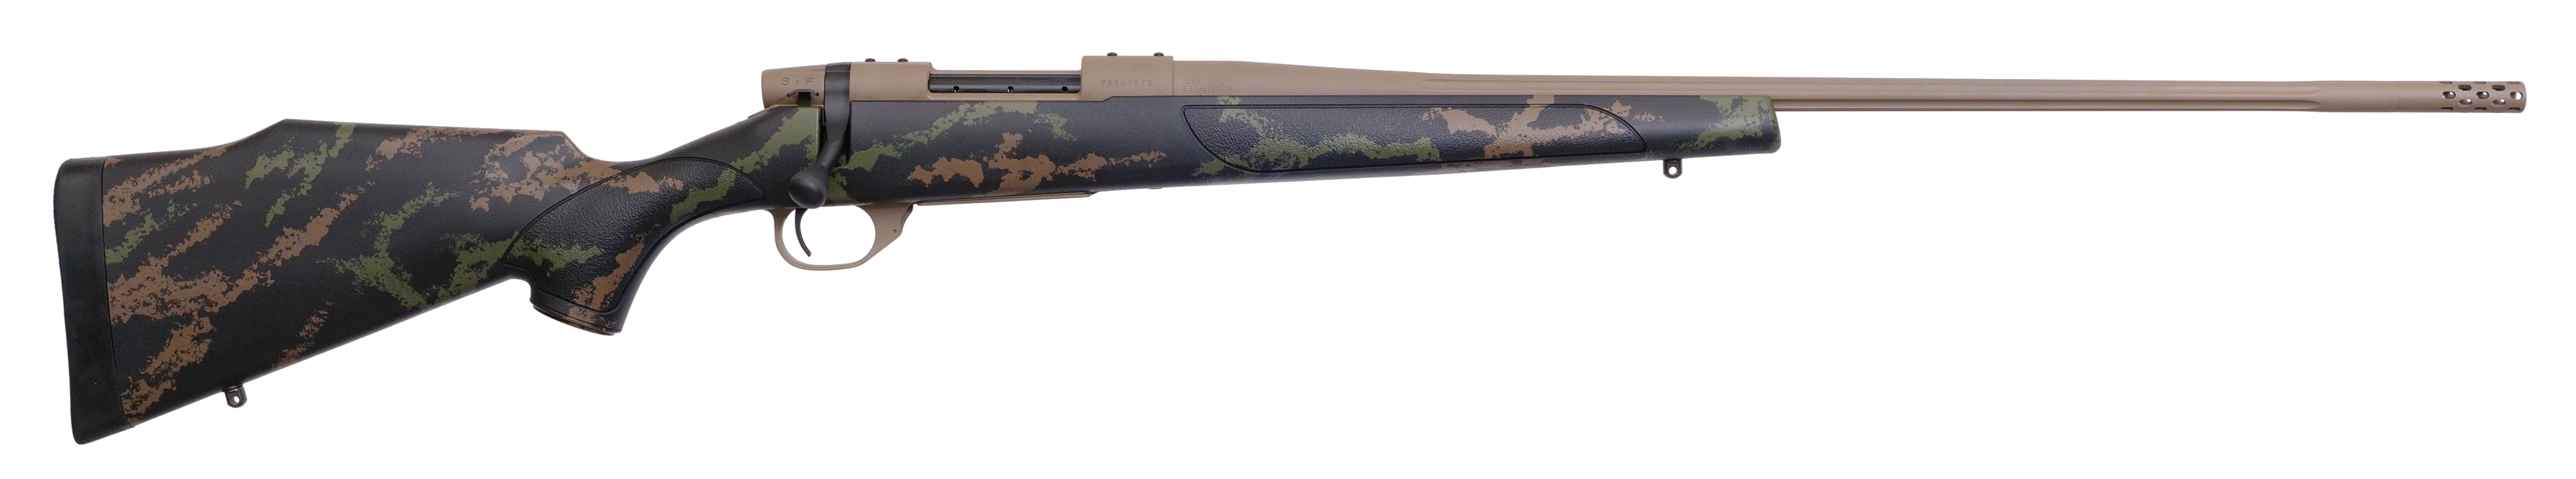 Weatherby VHC257WR8B Vanguard High Country 257 Wthby Mag 3+1 Cap 26